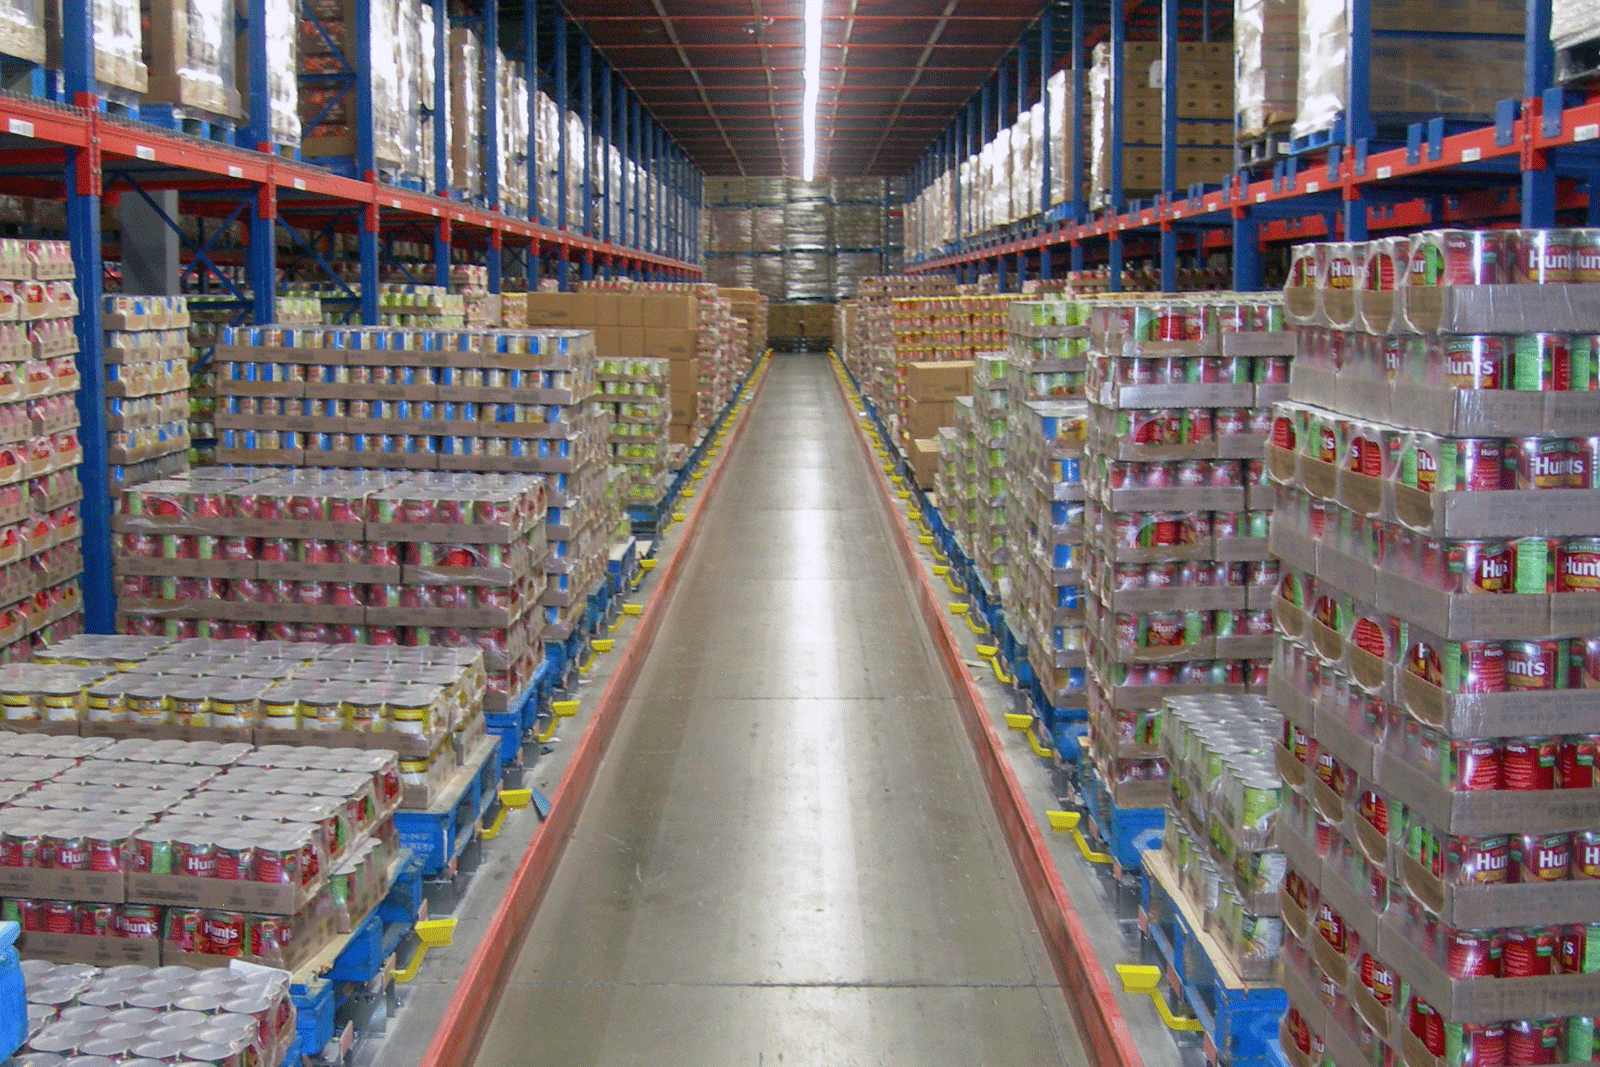 A Frazier Pick Tunnel with pallets stored on Pallet Flow racking.